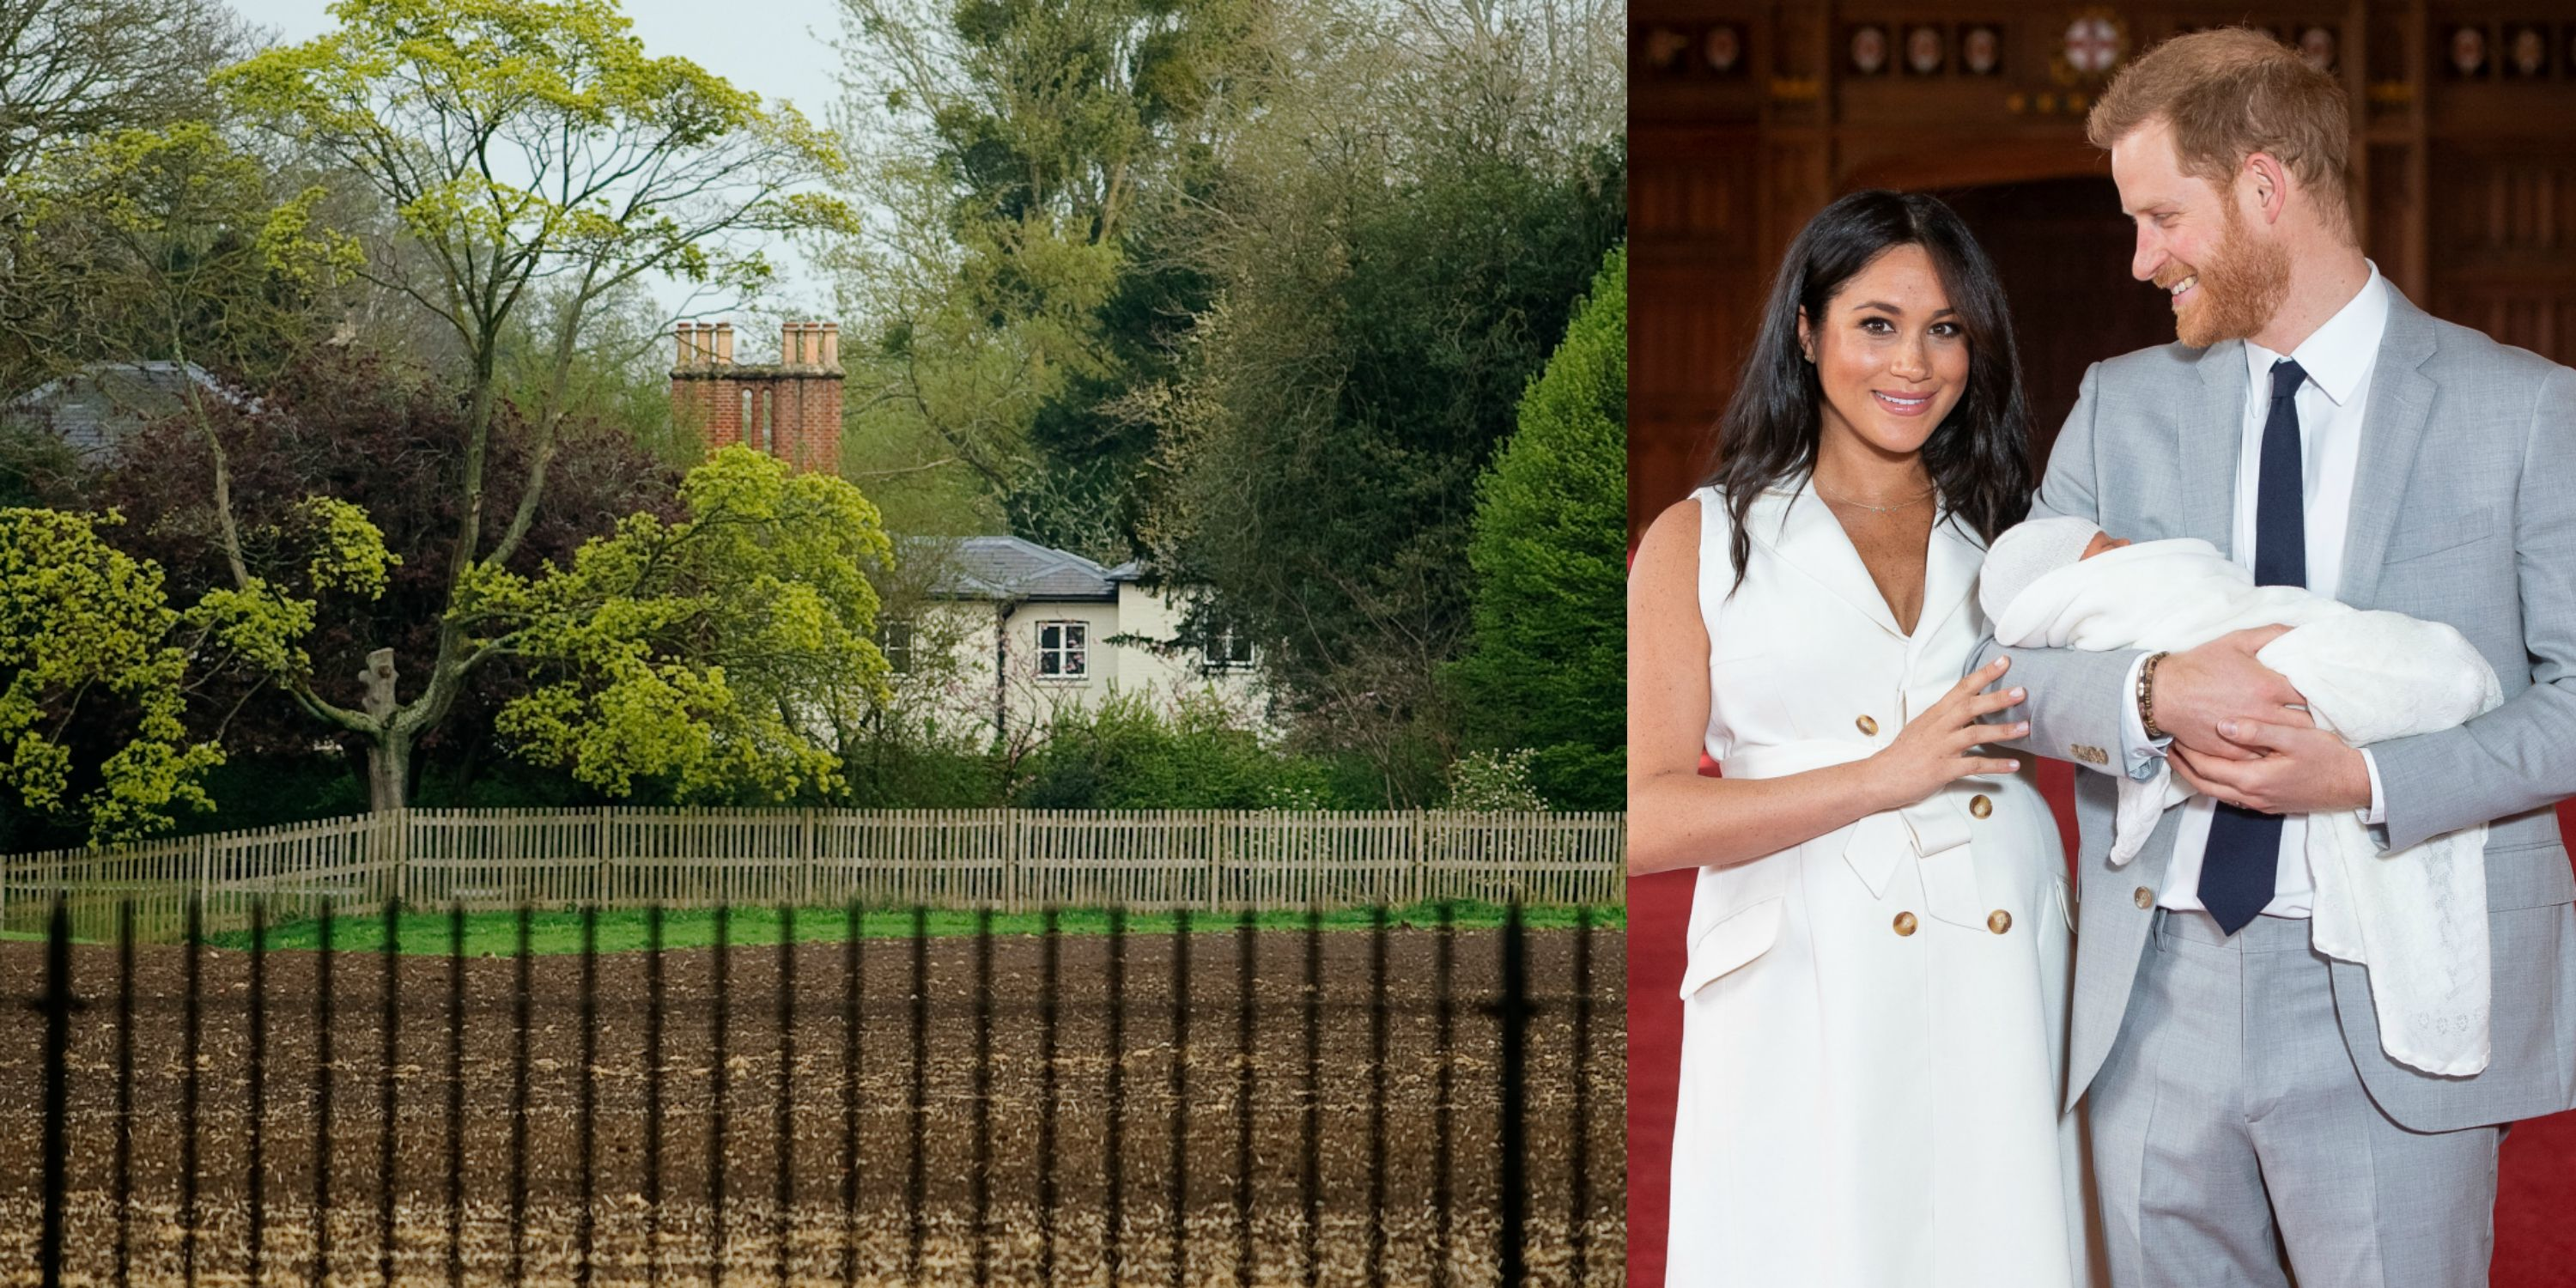 Meghan Markle and Prince Harry's Frogmore Cottage Renovations Aren't What People Expected